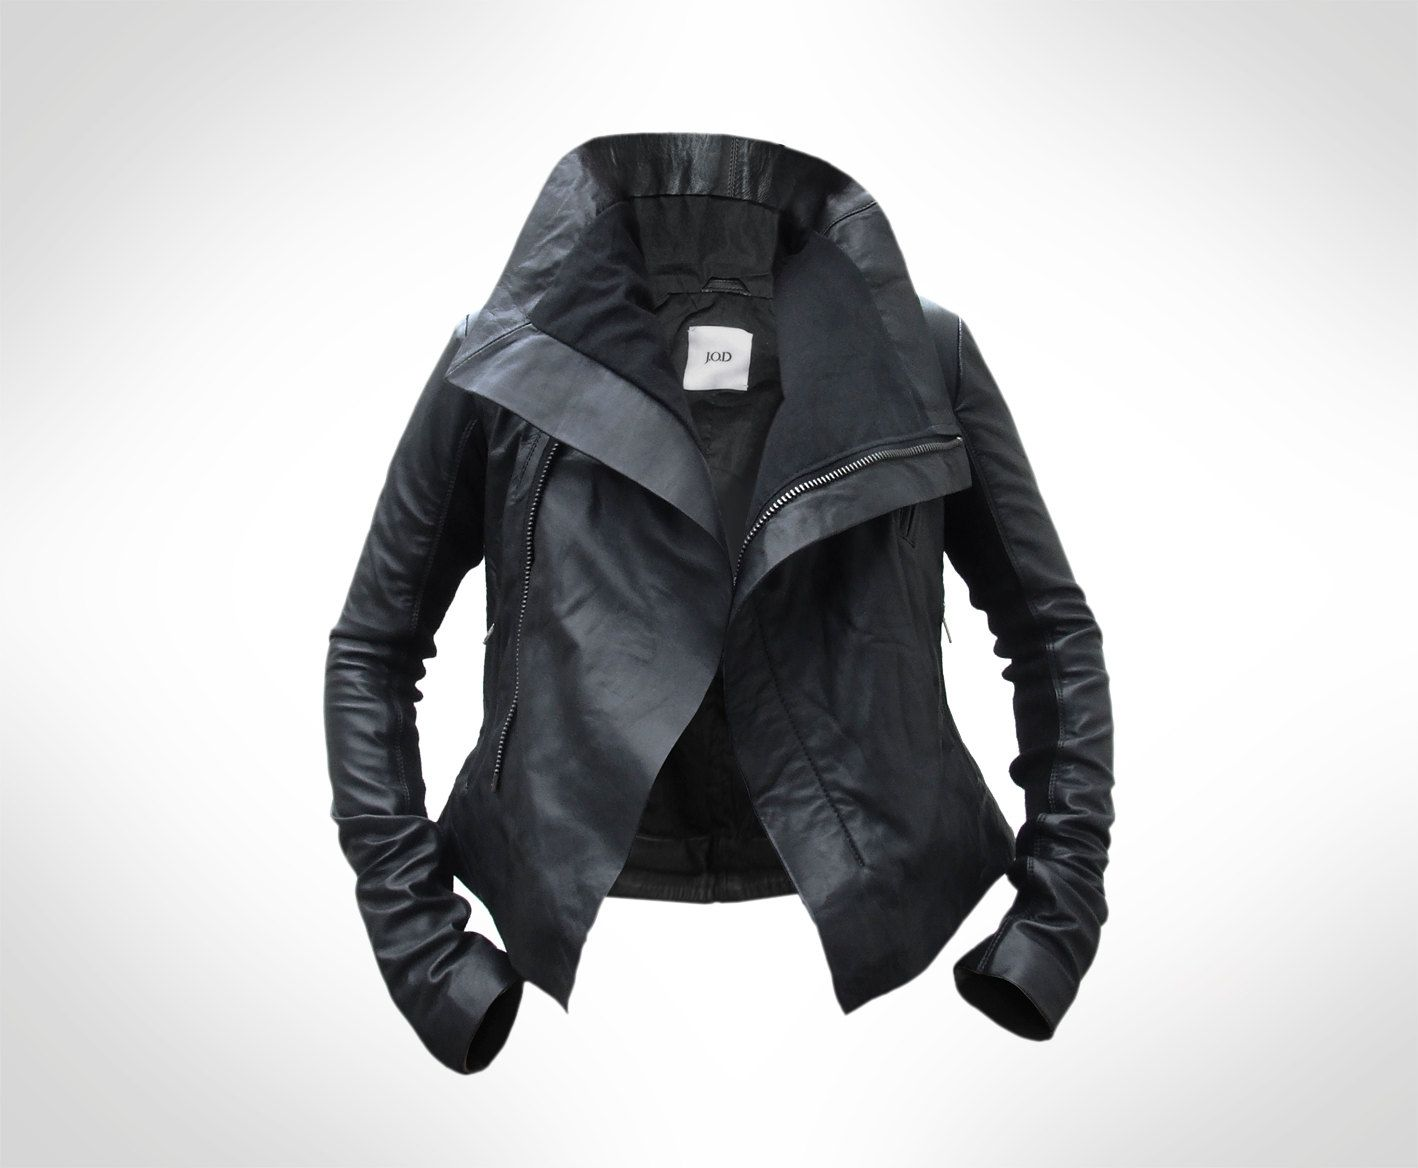 Womens Black Leather Biker Jacket by J.O.D UK8. €215,00, via Etsy ...